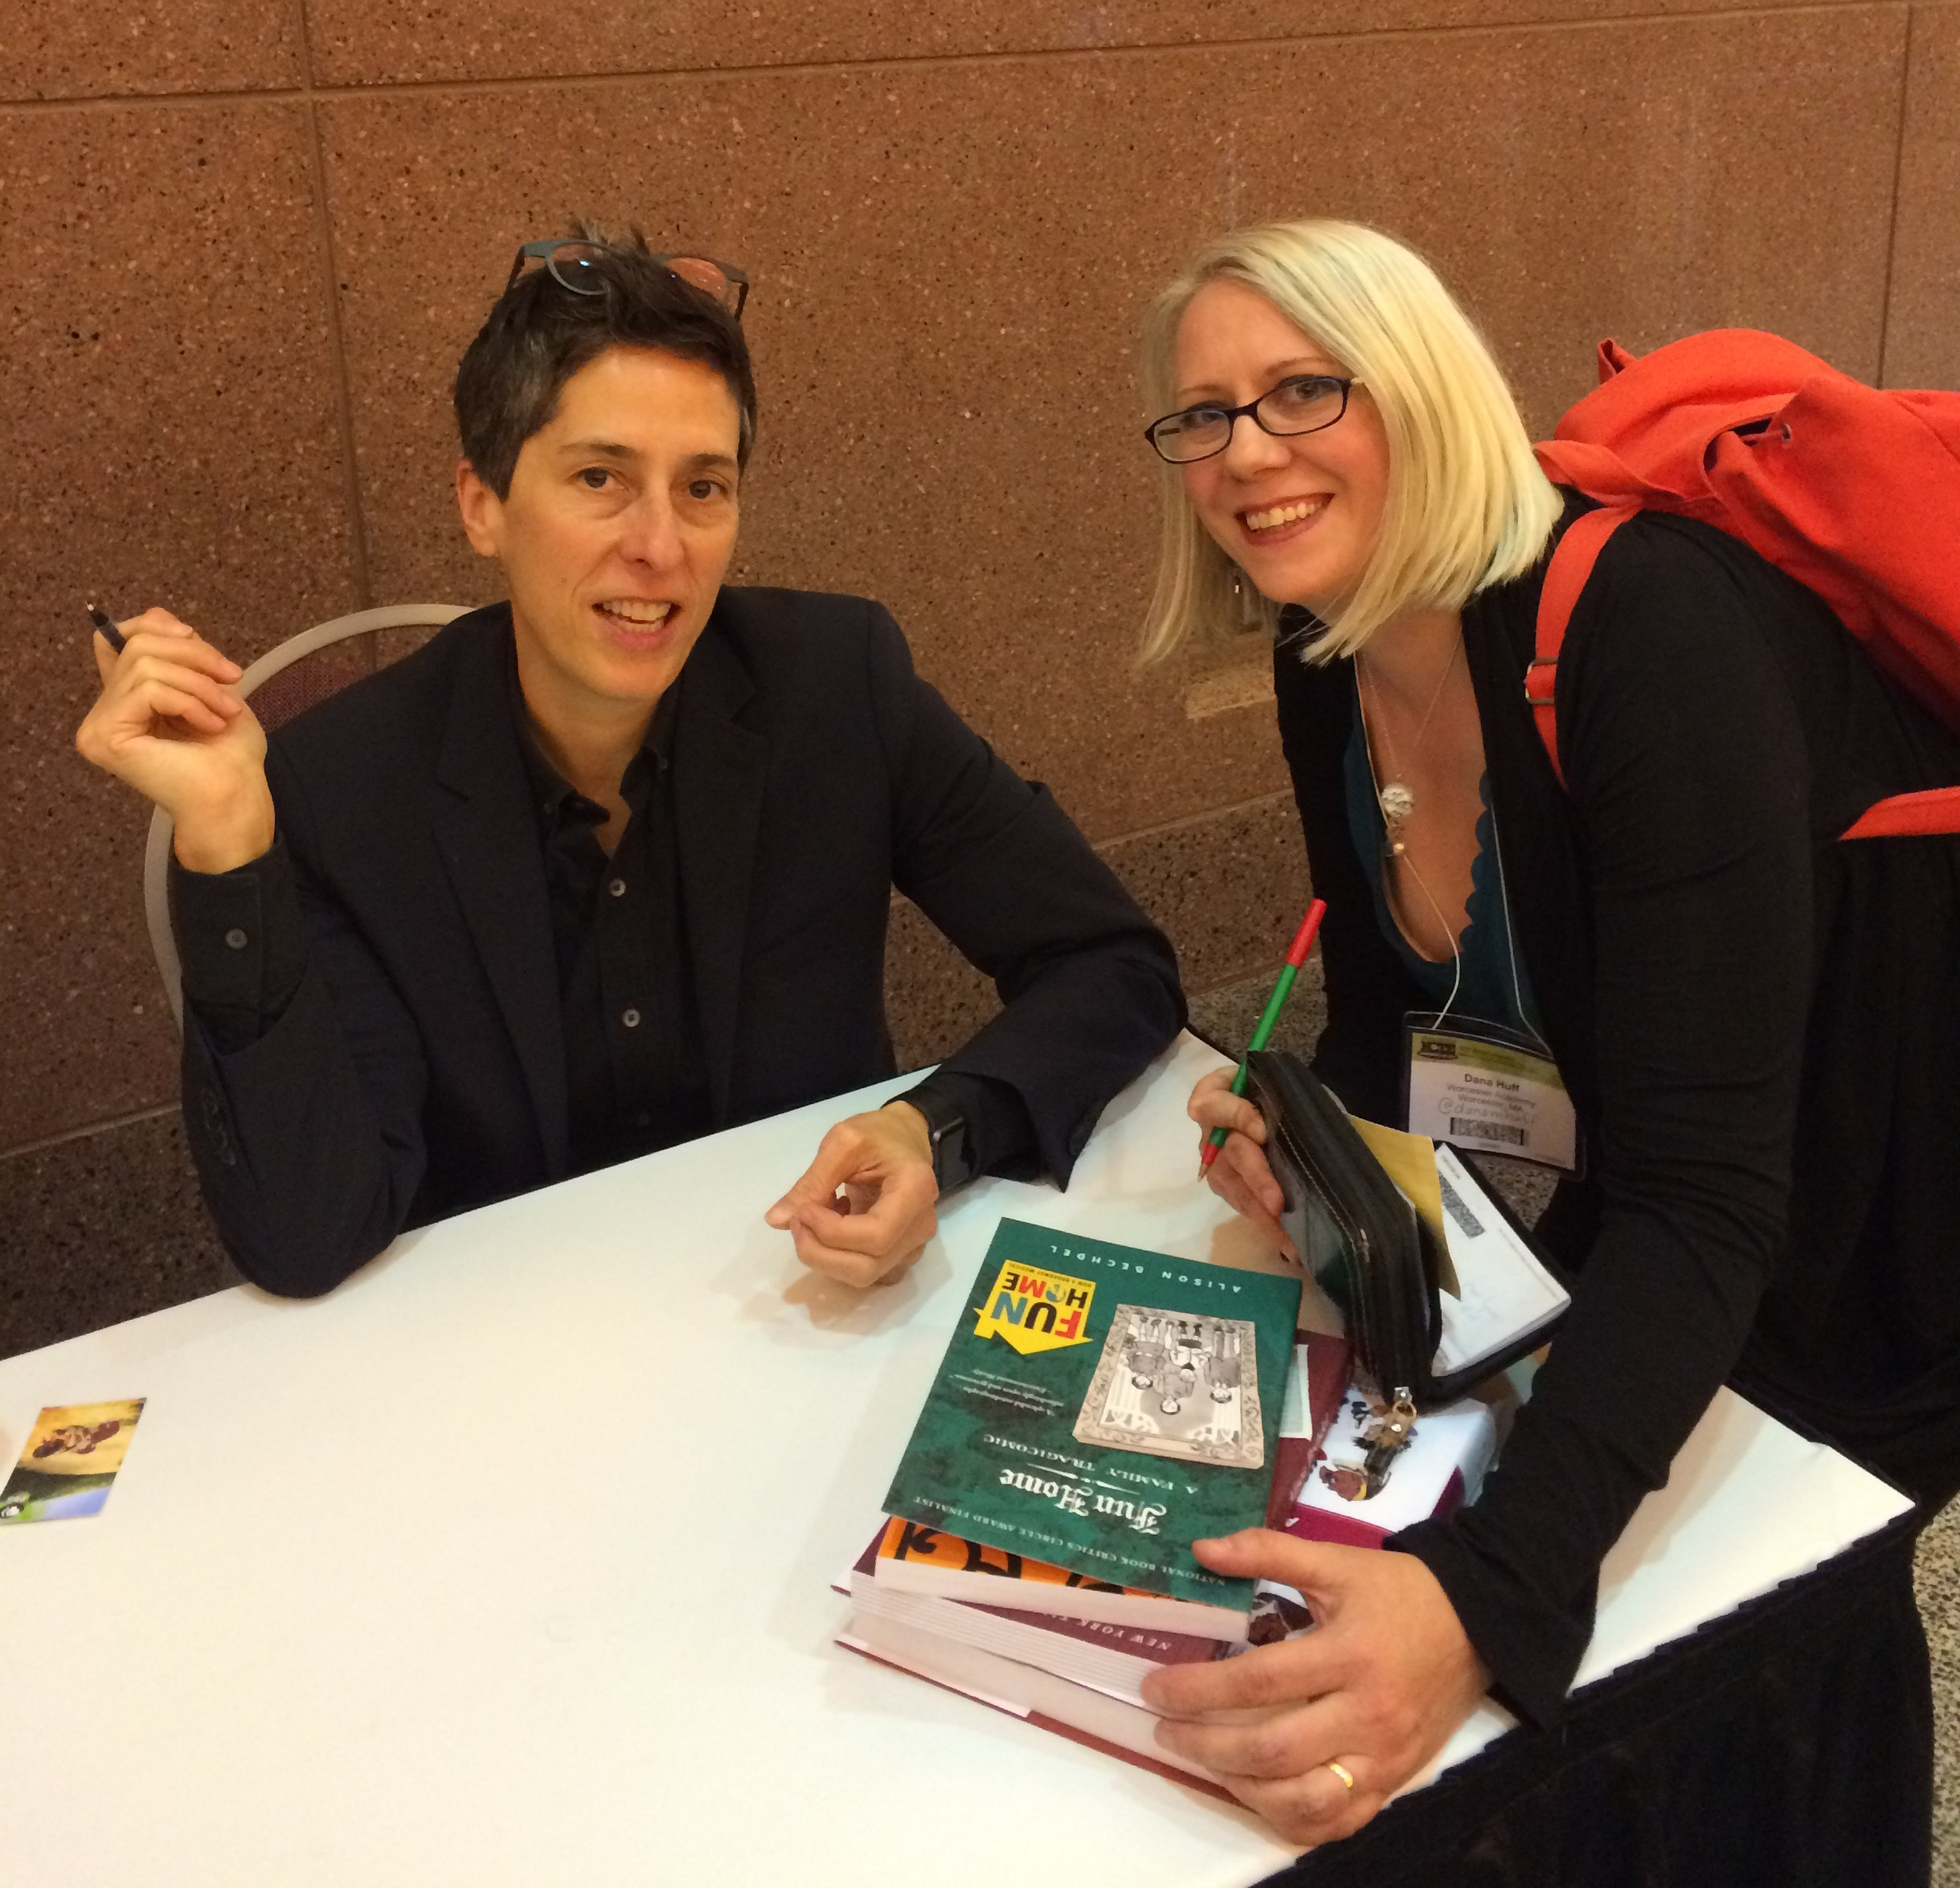 Alison Bechdel and Dana